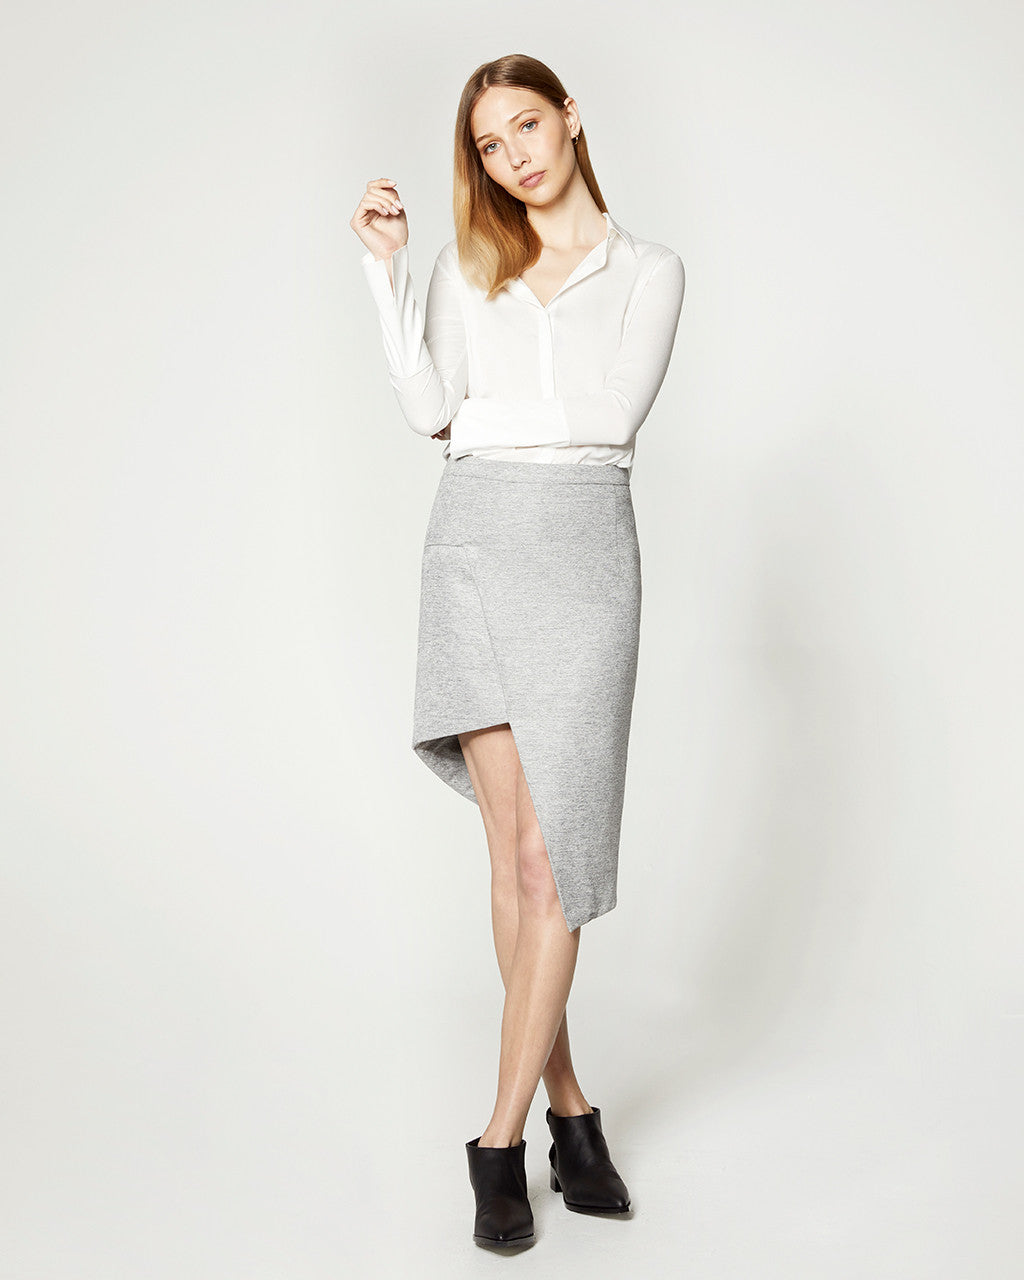 Samples & Seconds - Staggered Skirt - Grey